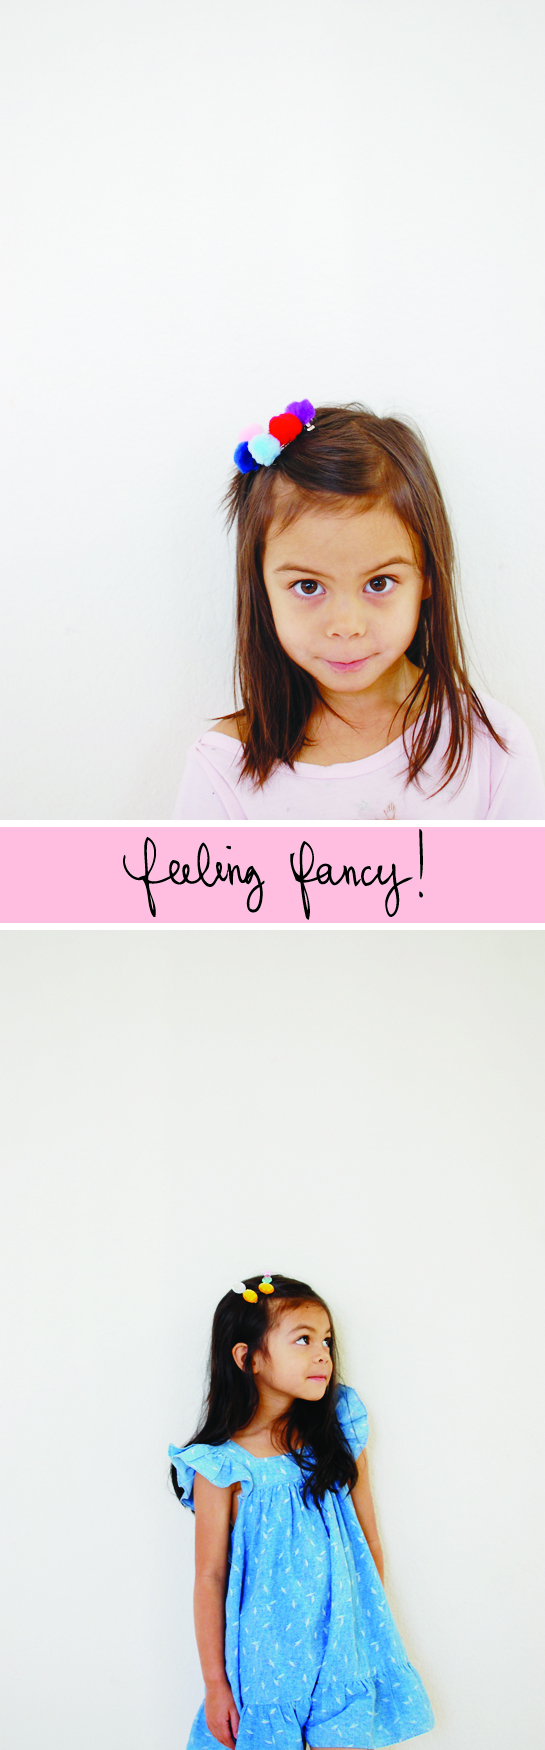 diy: fanciful barrettes